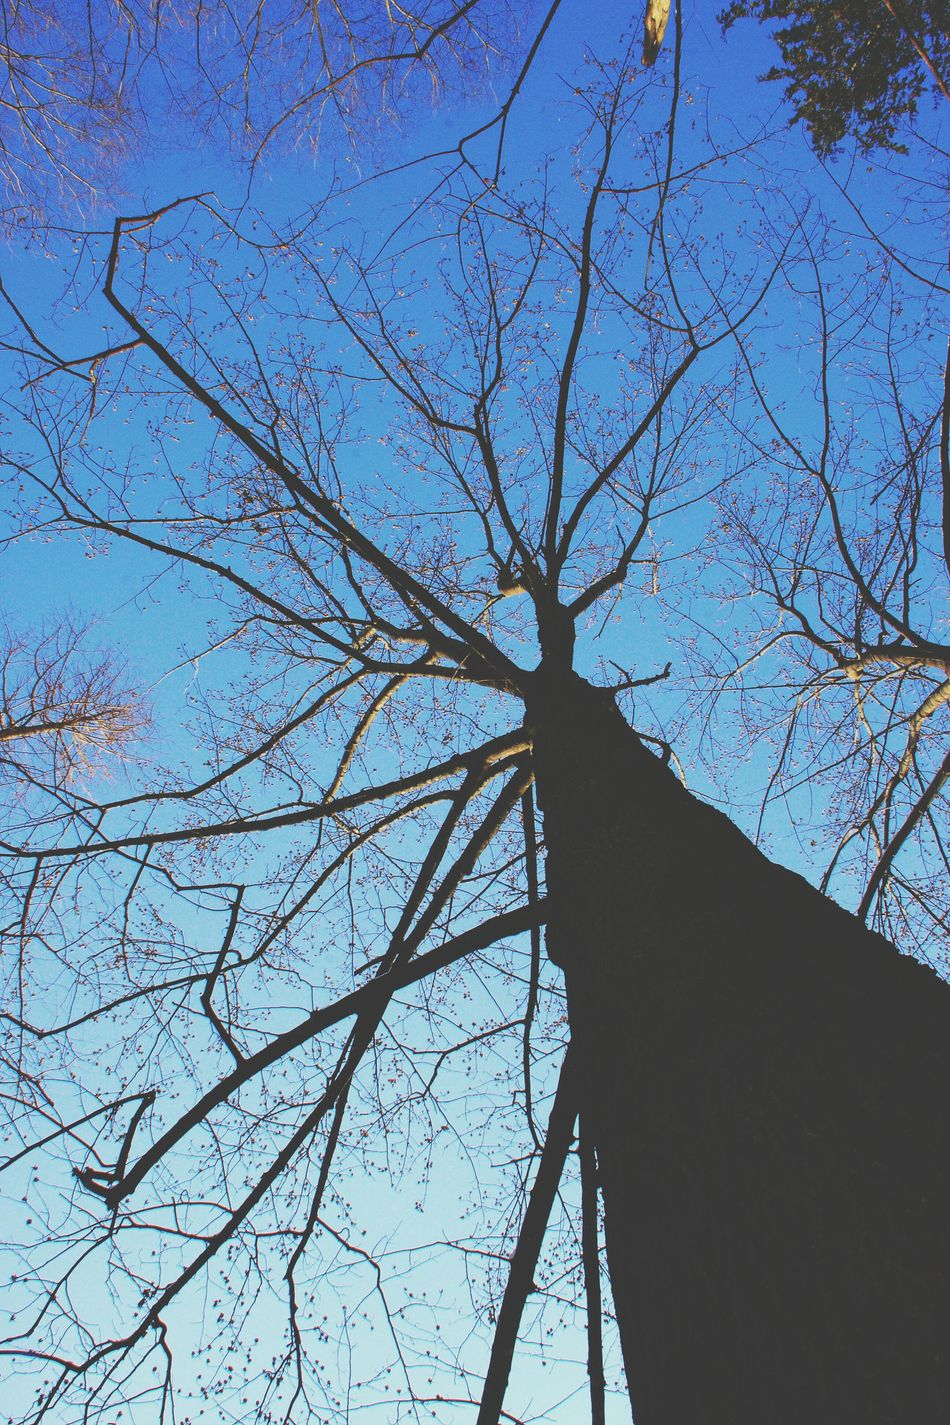 Tree Low Angle View Sky No People Blue Nature Branch Outdoors Day Clear Sky Beauty In Nature Bird Animal Themes Snow Time Winter Nami Island Nami Island , Korea Korea Trees Tree Low Angle View Nature Beauty In Nature